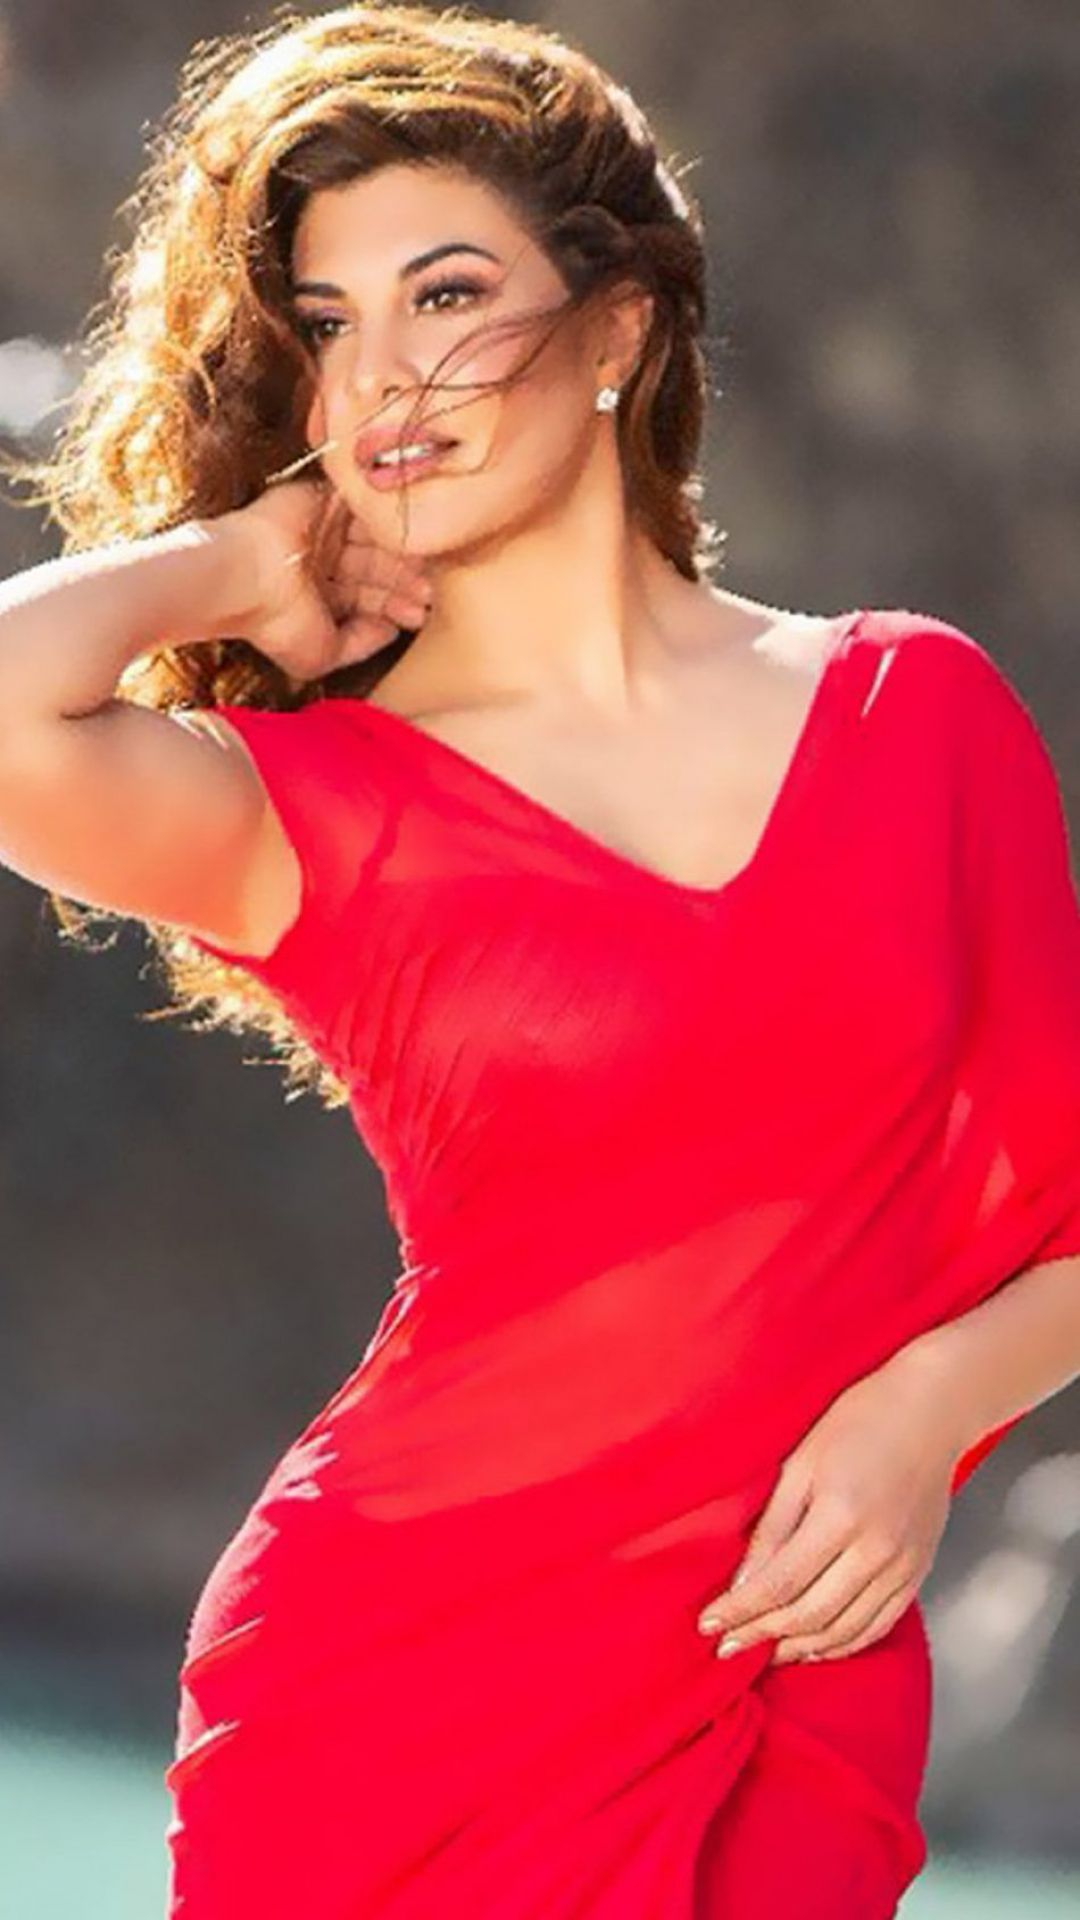 Download Jacqueline Fernandez Stunning Red Dress In Race 3 - Android / iPhone HD Wallpaper Background Download